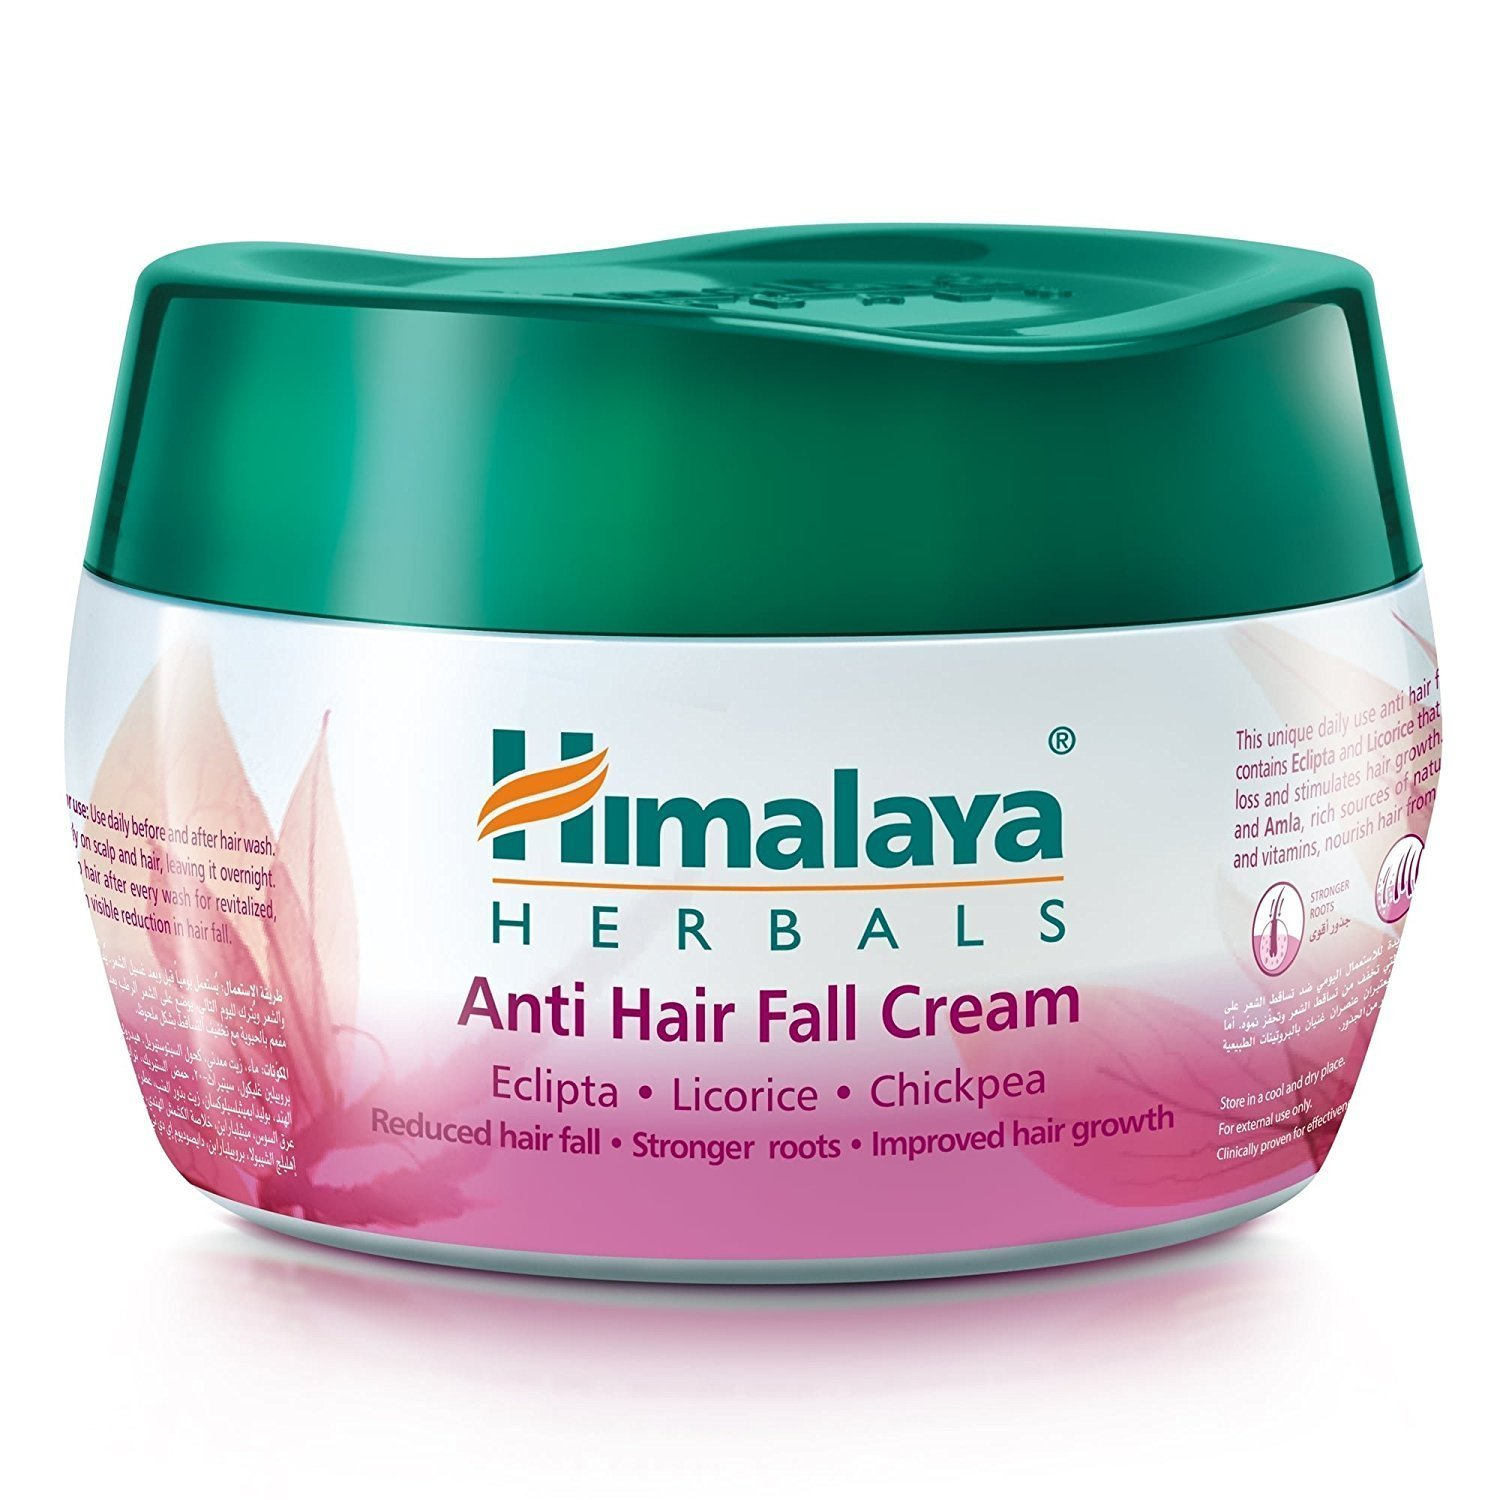 Himalaya Herbals Anti Hair Fall Cream (100ml)